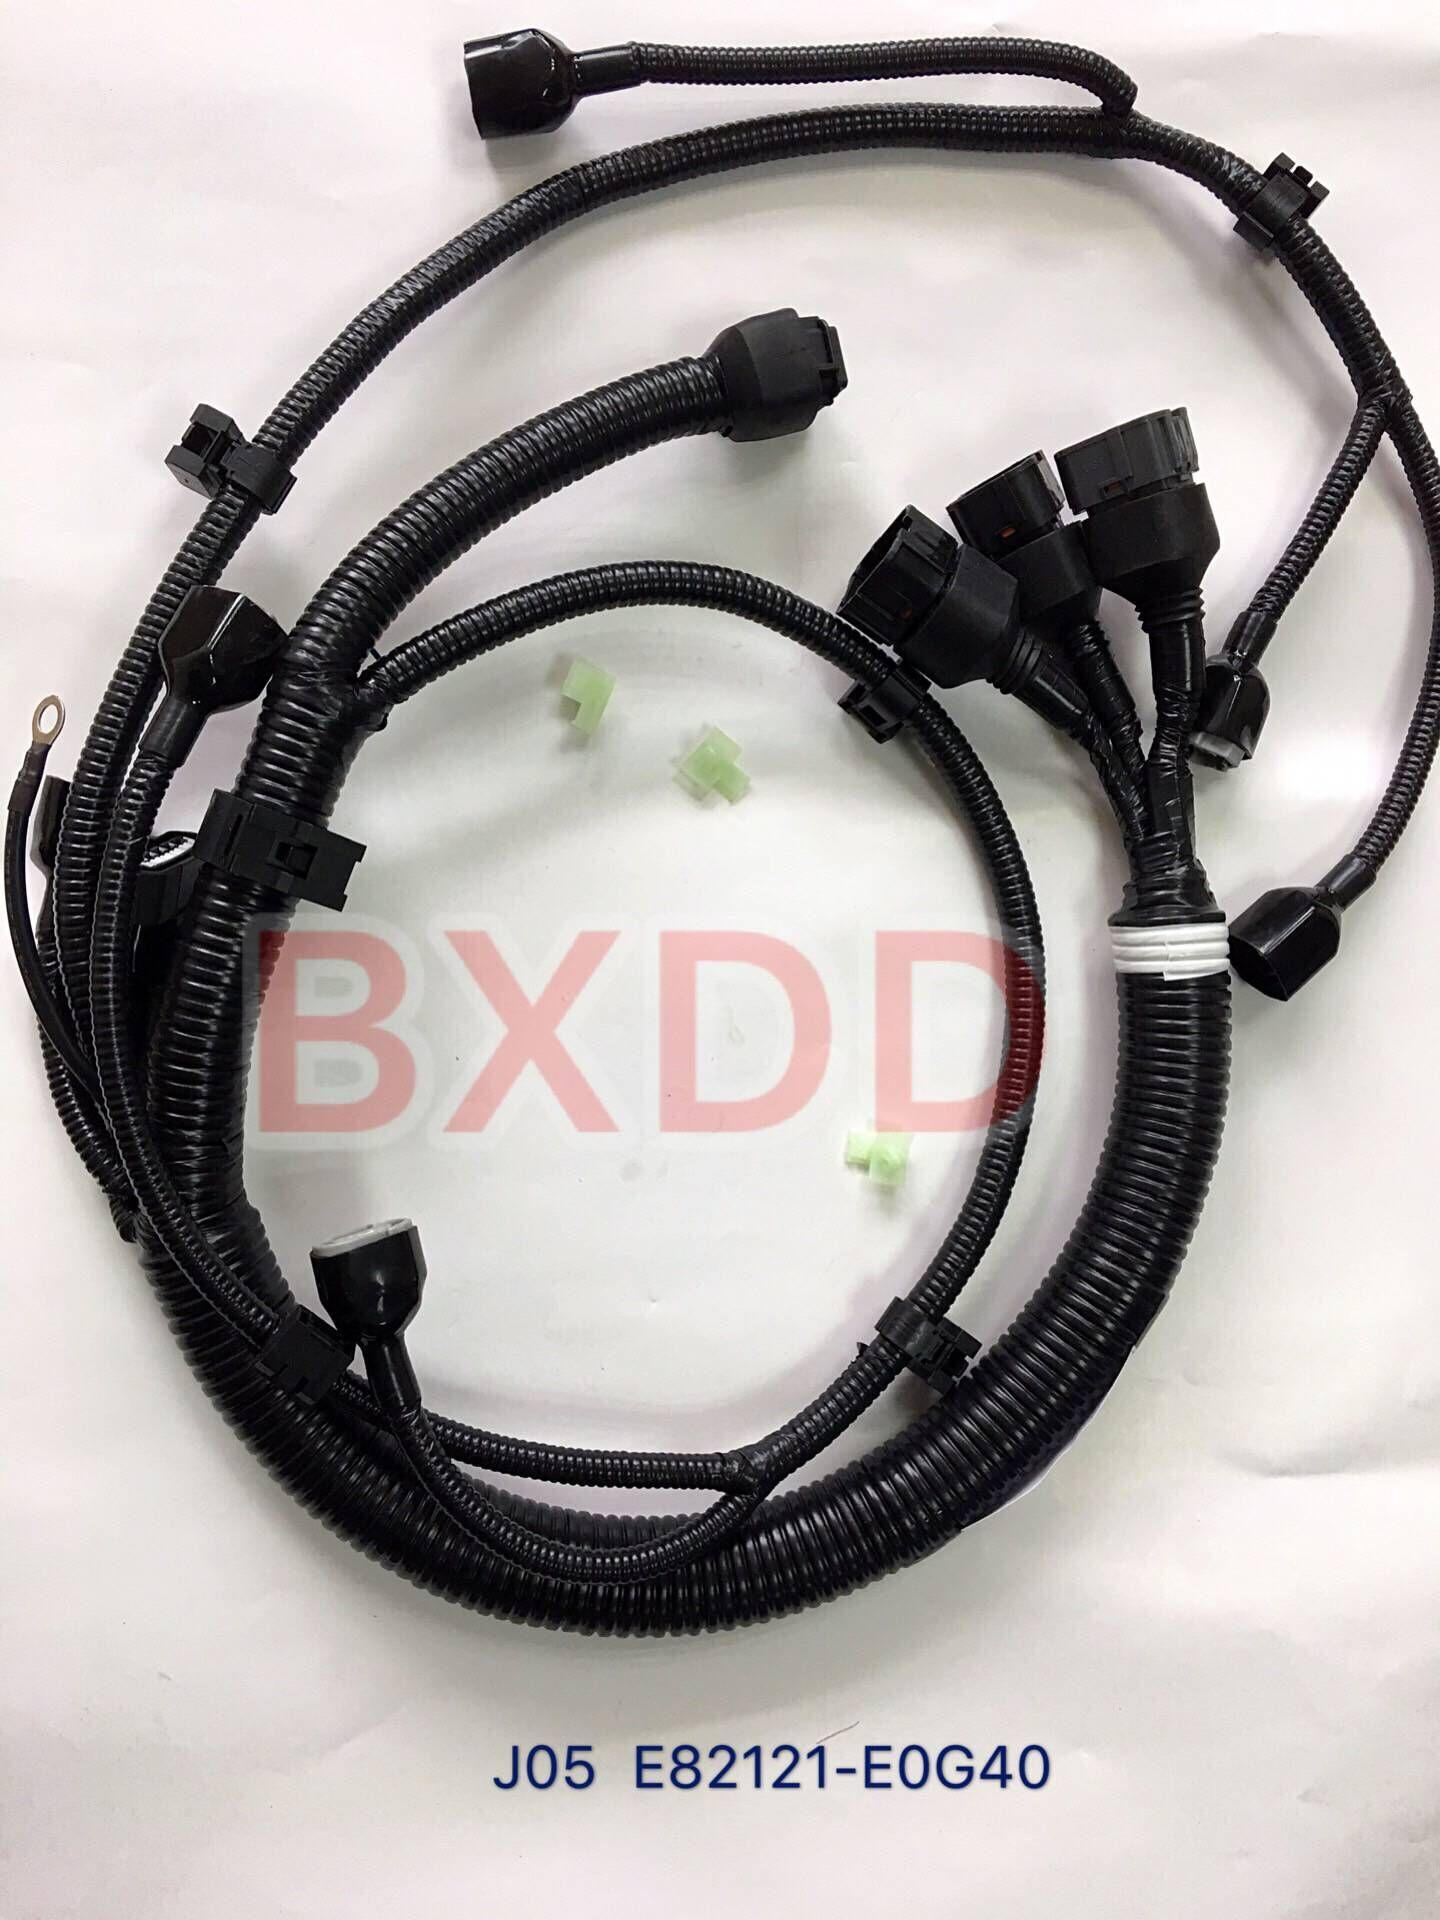 2018 Kobelco Excavator Wiring Harness 82121 Eog40 Engine Harnesses For Cars Sk250 8 Assy Vh82121e0g60 From Ada189001